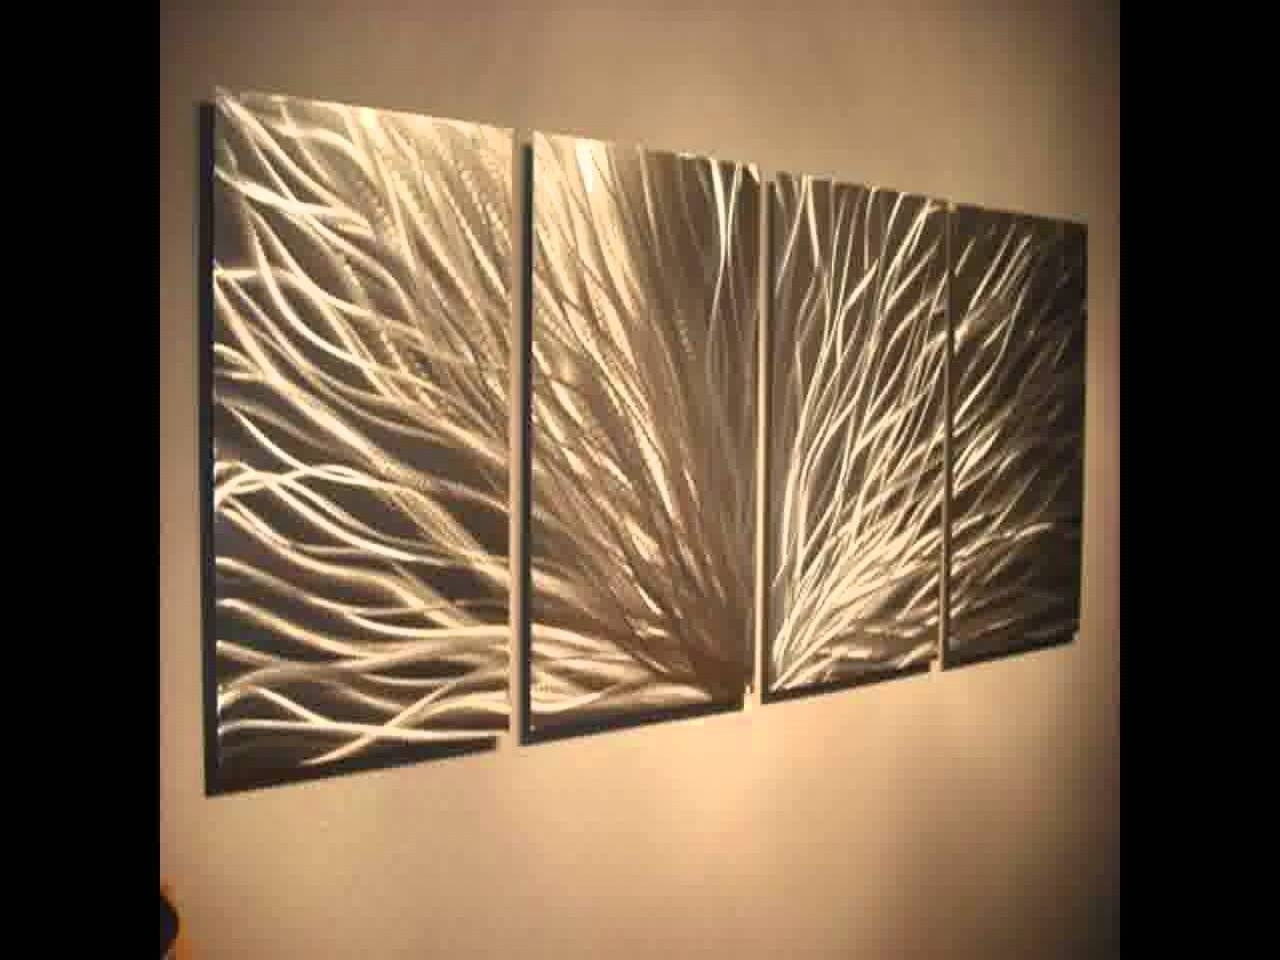 Wall Art For Men Design Ideas – Youtube Pertaining To Most Recently Released Wall Art For Men (View 7 of 15)